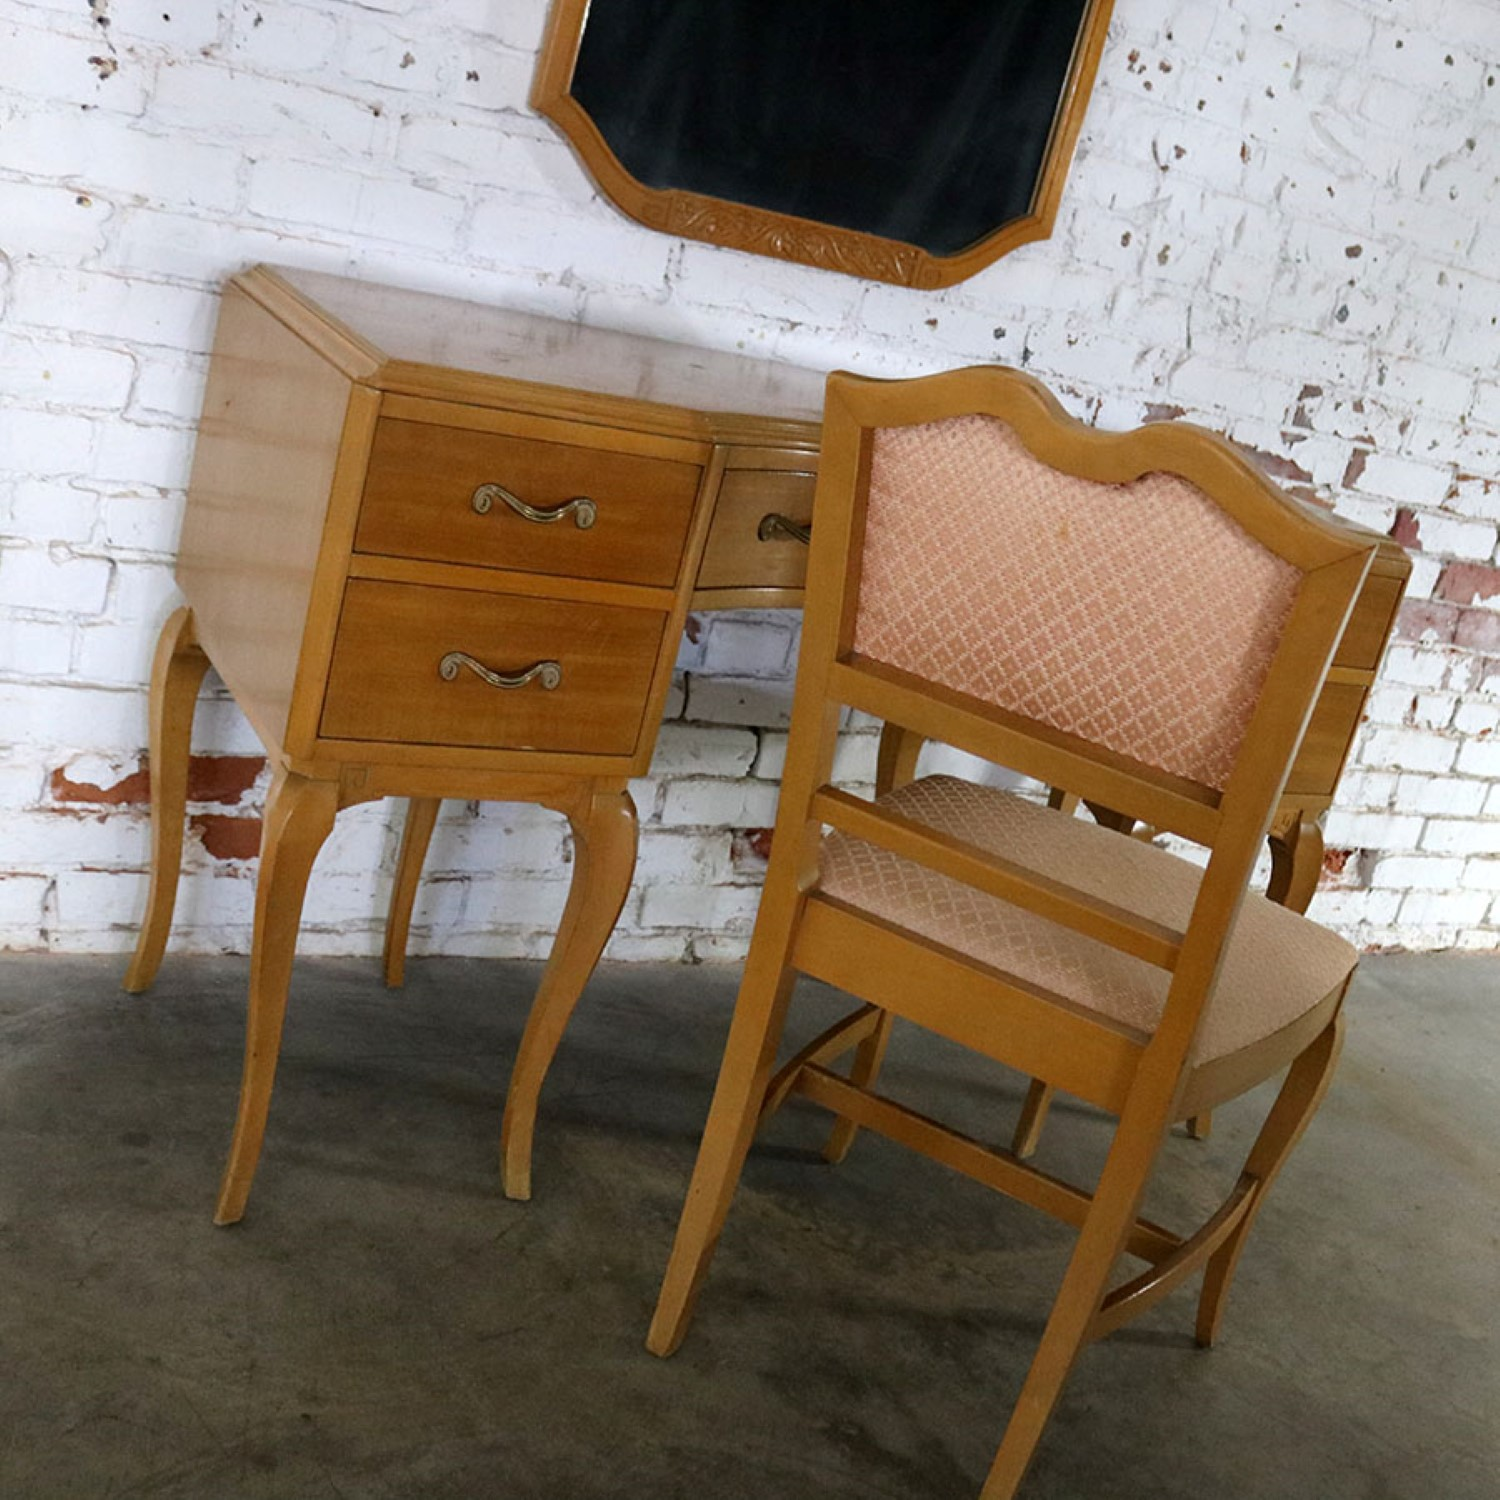 art deco era furniture. Art Deco Style Vanity With Mirror And Chair By Rway Northern Furniture Company Of Sheboygan Era A